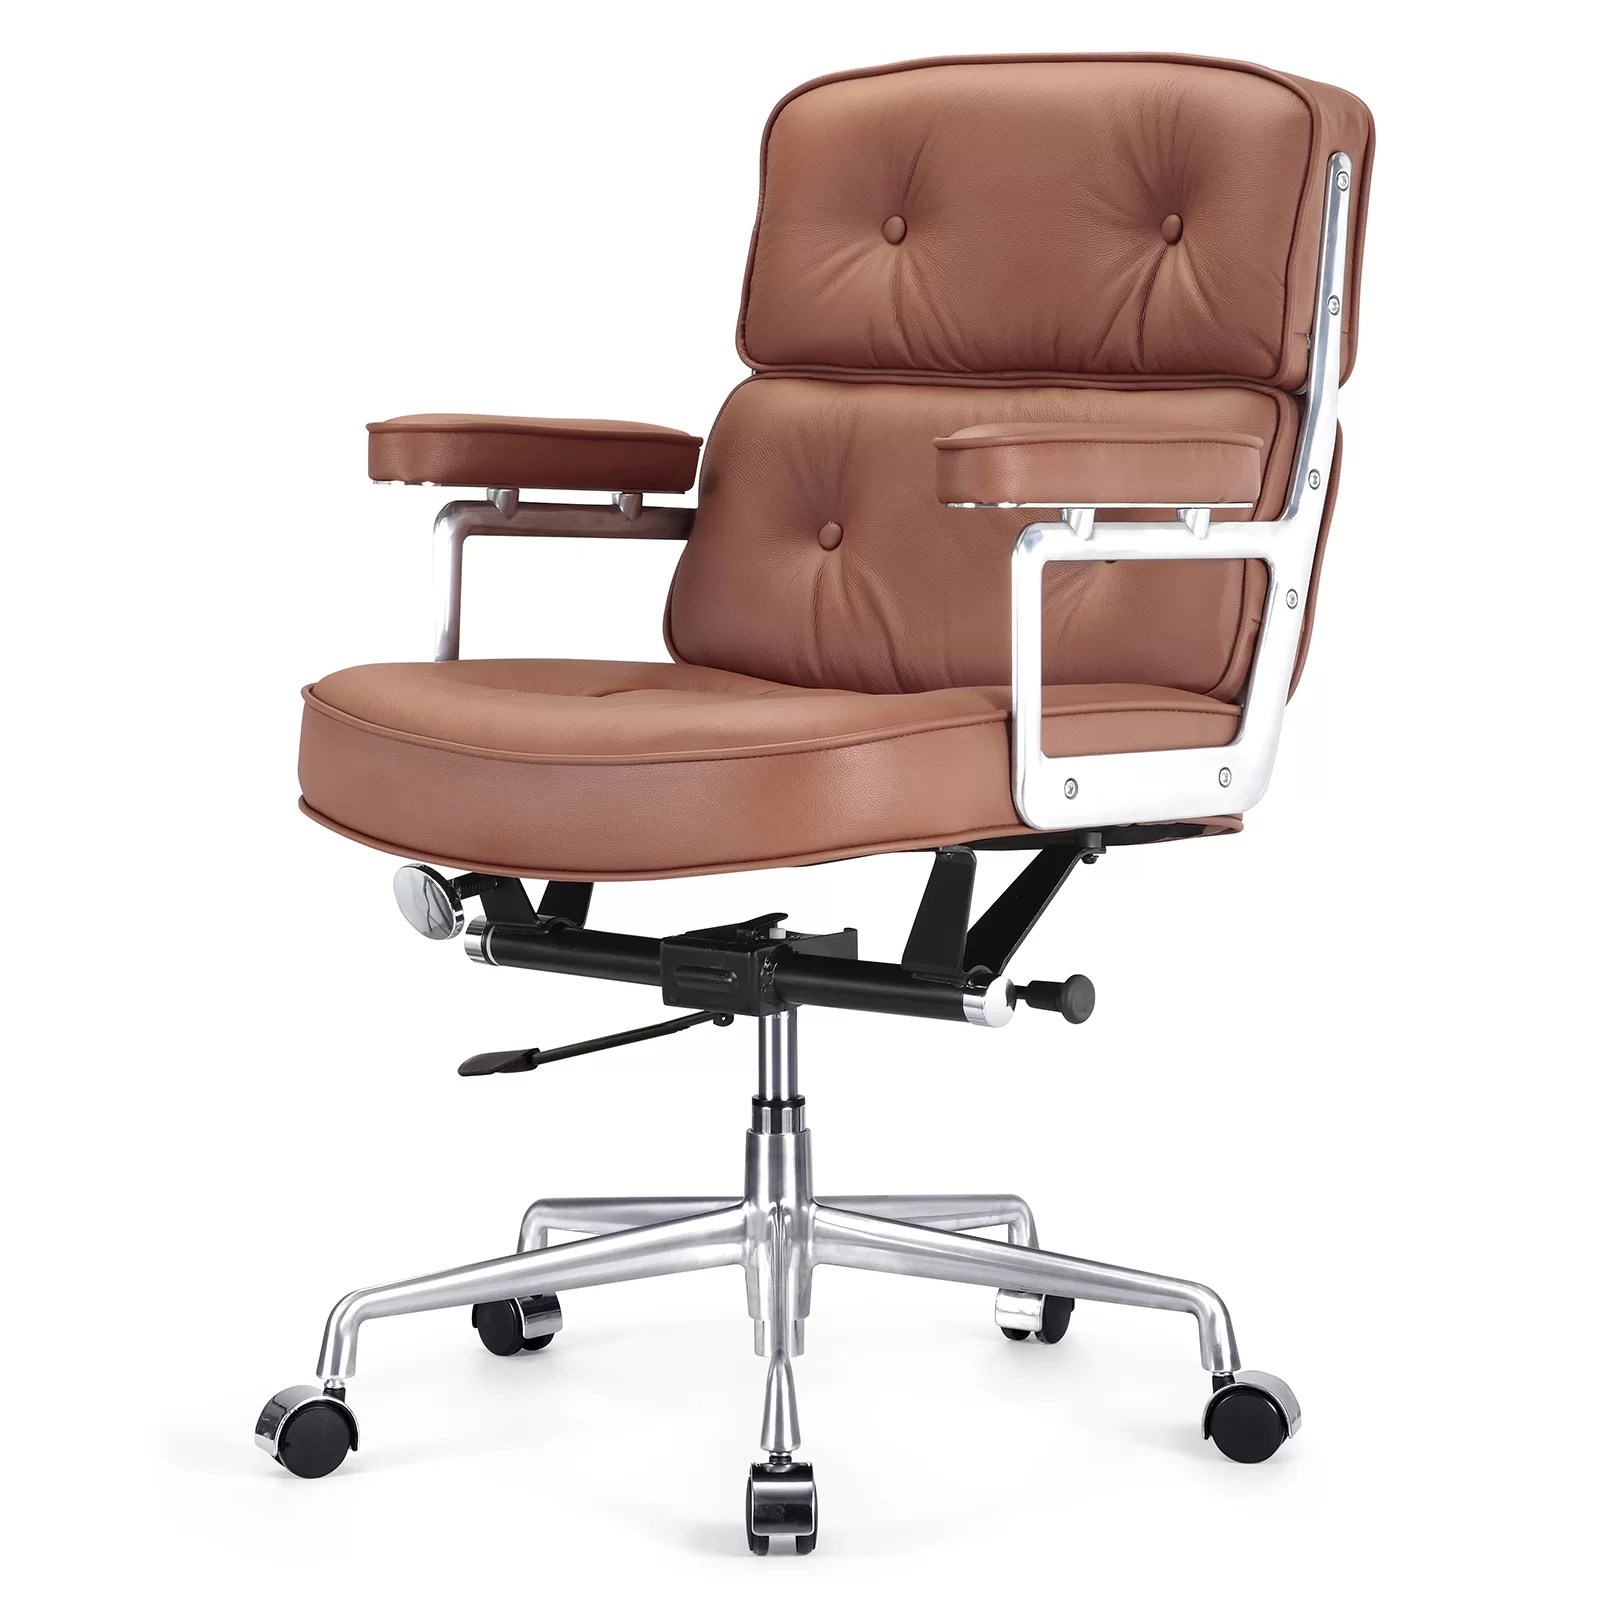 Office Leather Chairs Meelano Leather Desk Chair And Reviews Wayfair